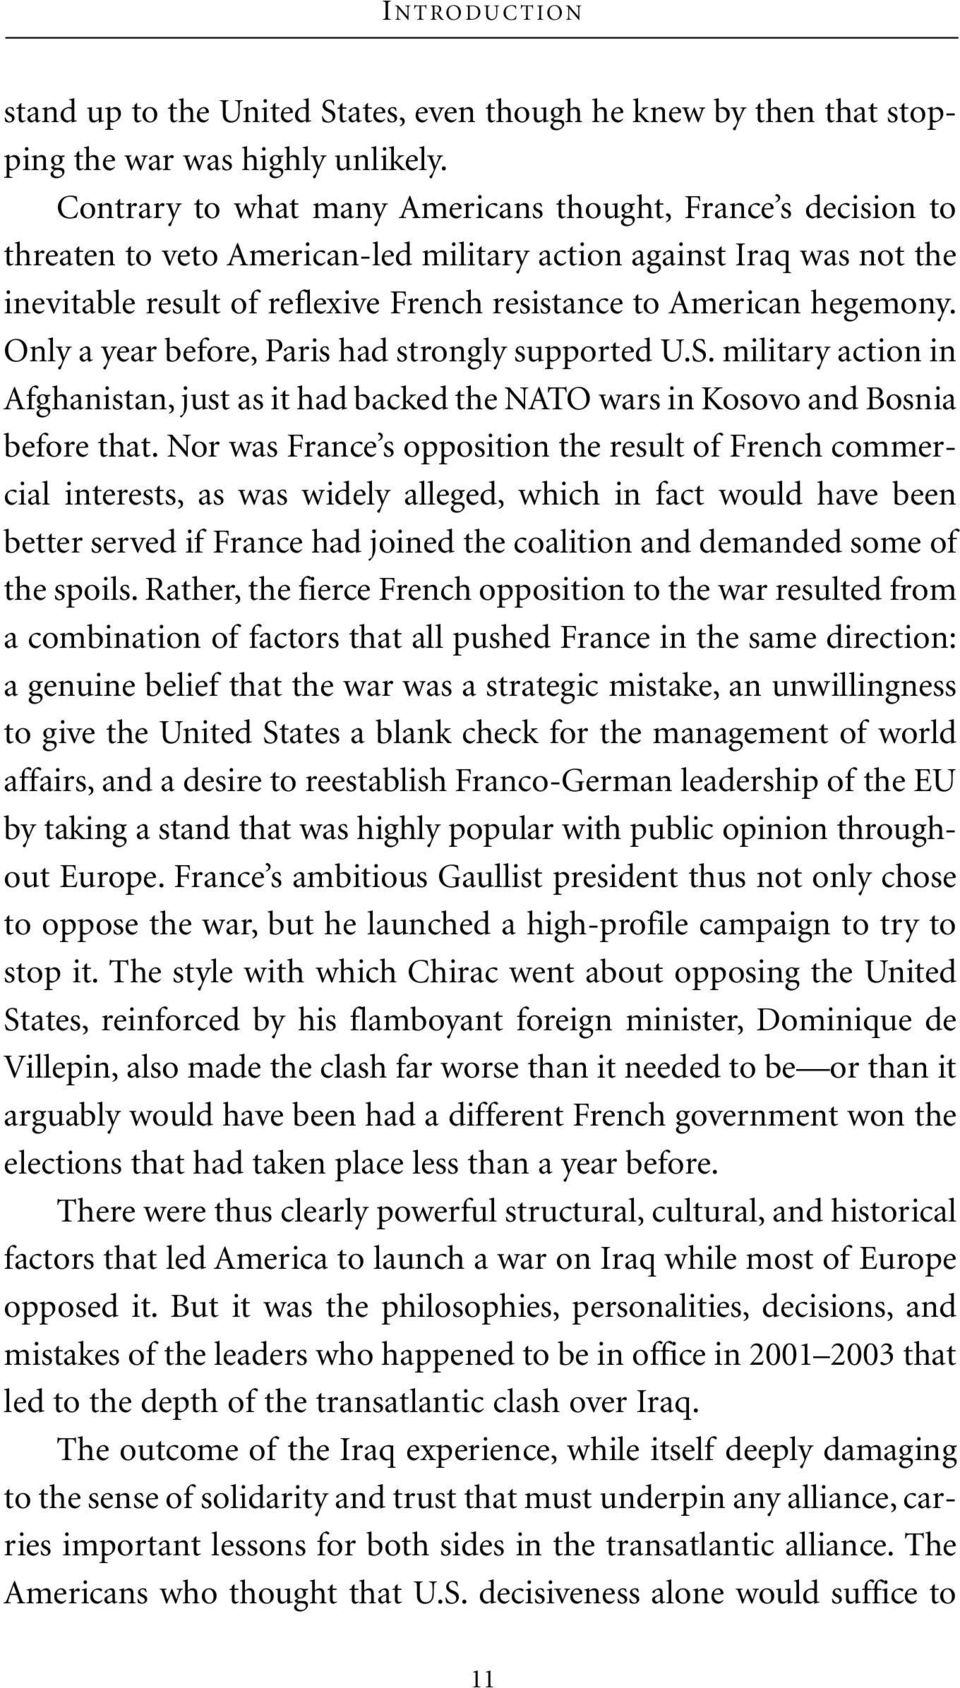 hegemony. Only a year before, Paris had strongly supported U.S. military action in Afghanistan, just as it had backed the NATO wars in Kosovo and Bosnia before that.